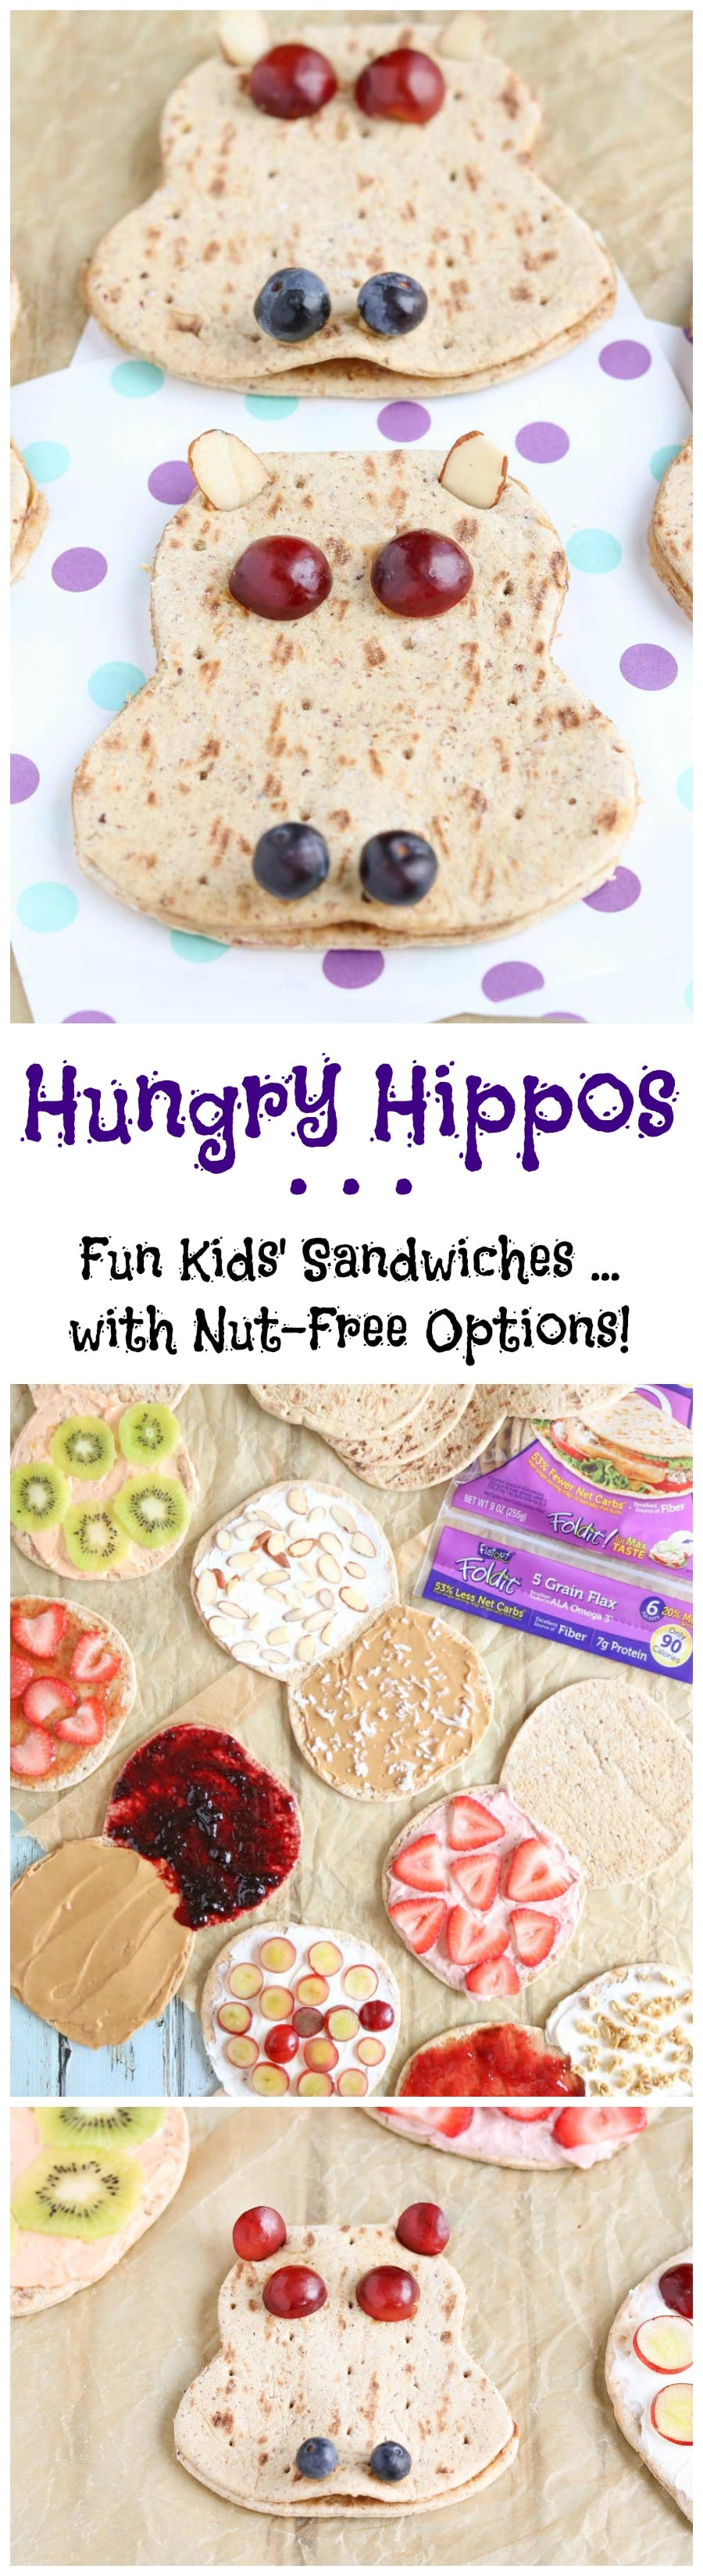 Kids Will Love This Adorable Sandwich Recipe Use It As A Fun Edible Art Project